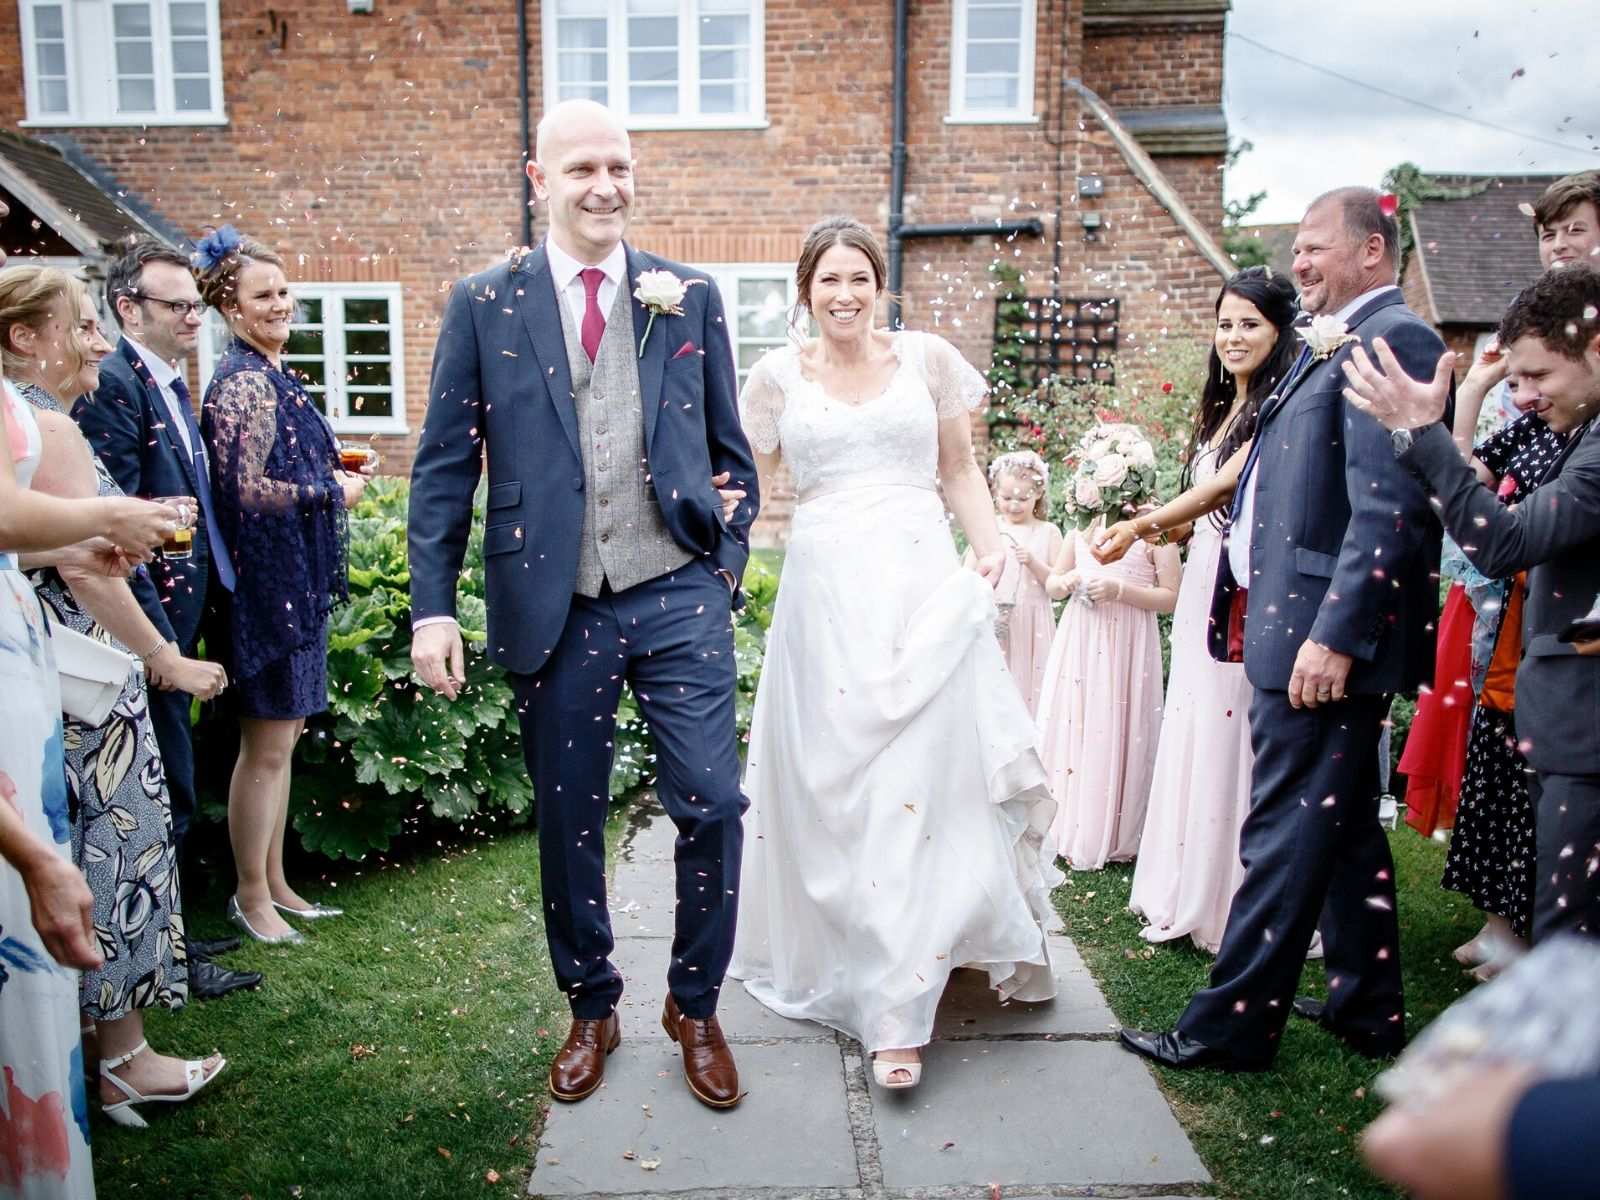 Bride wearing Ivory and co wedding dress